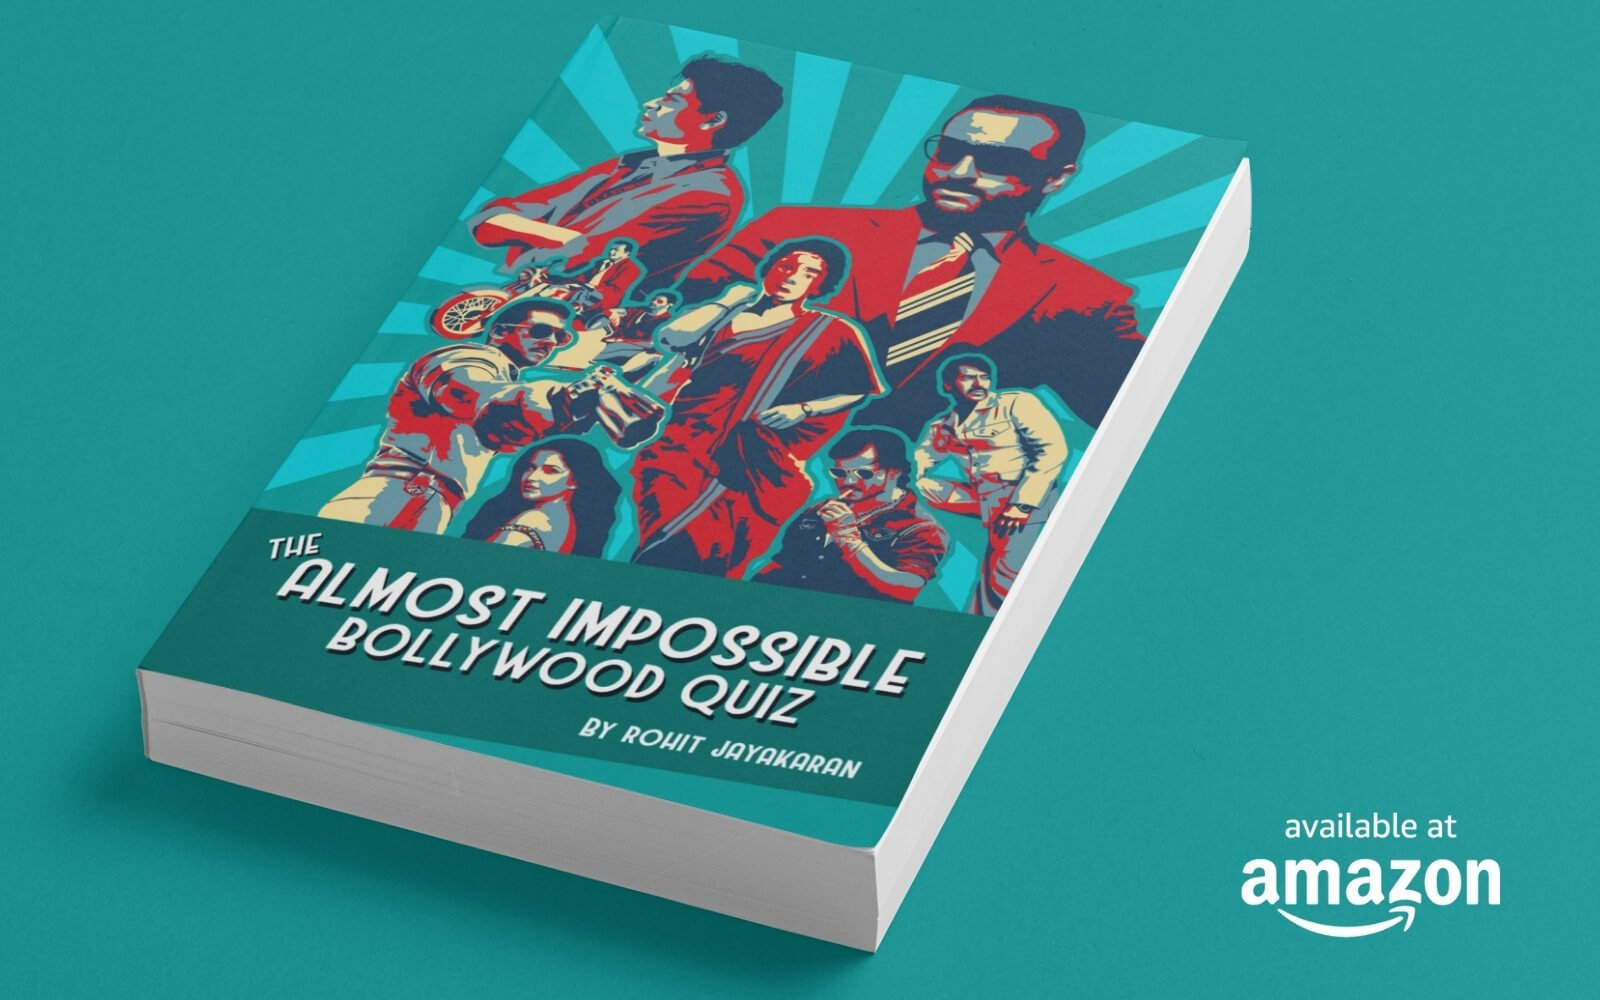 The Almost Impossible Bollywood Quiz - Rohit Jayakaran